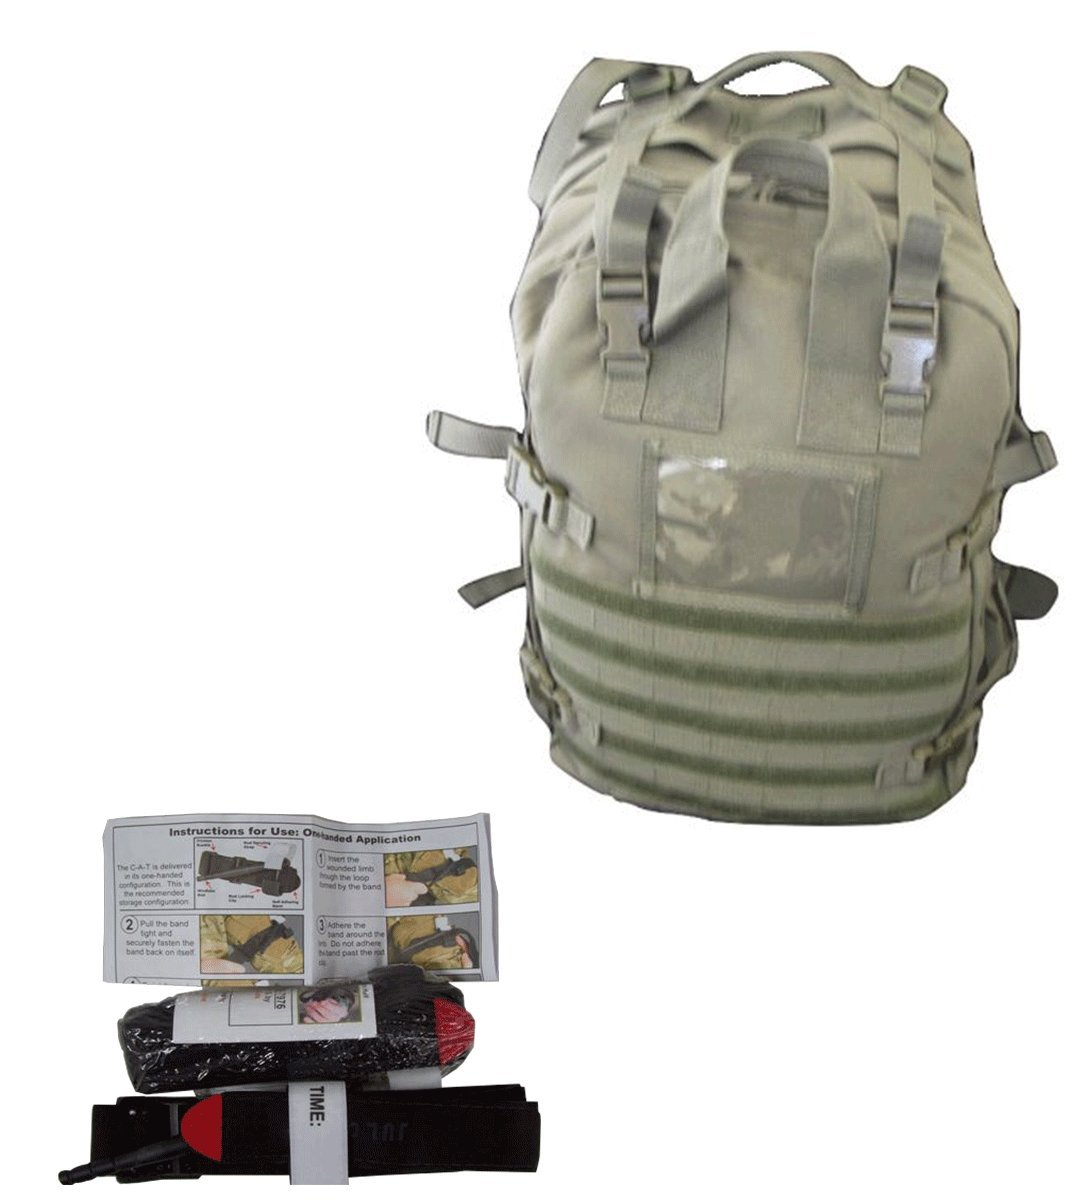 Medical Bags Fully Stocked - Stomp Medical Kit Bag With CAT Tourniquet Bundle (OD)